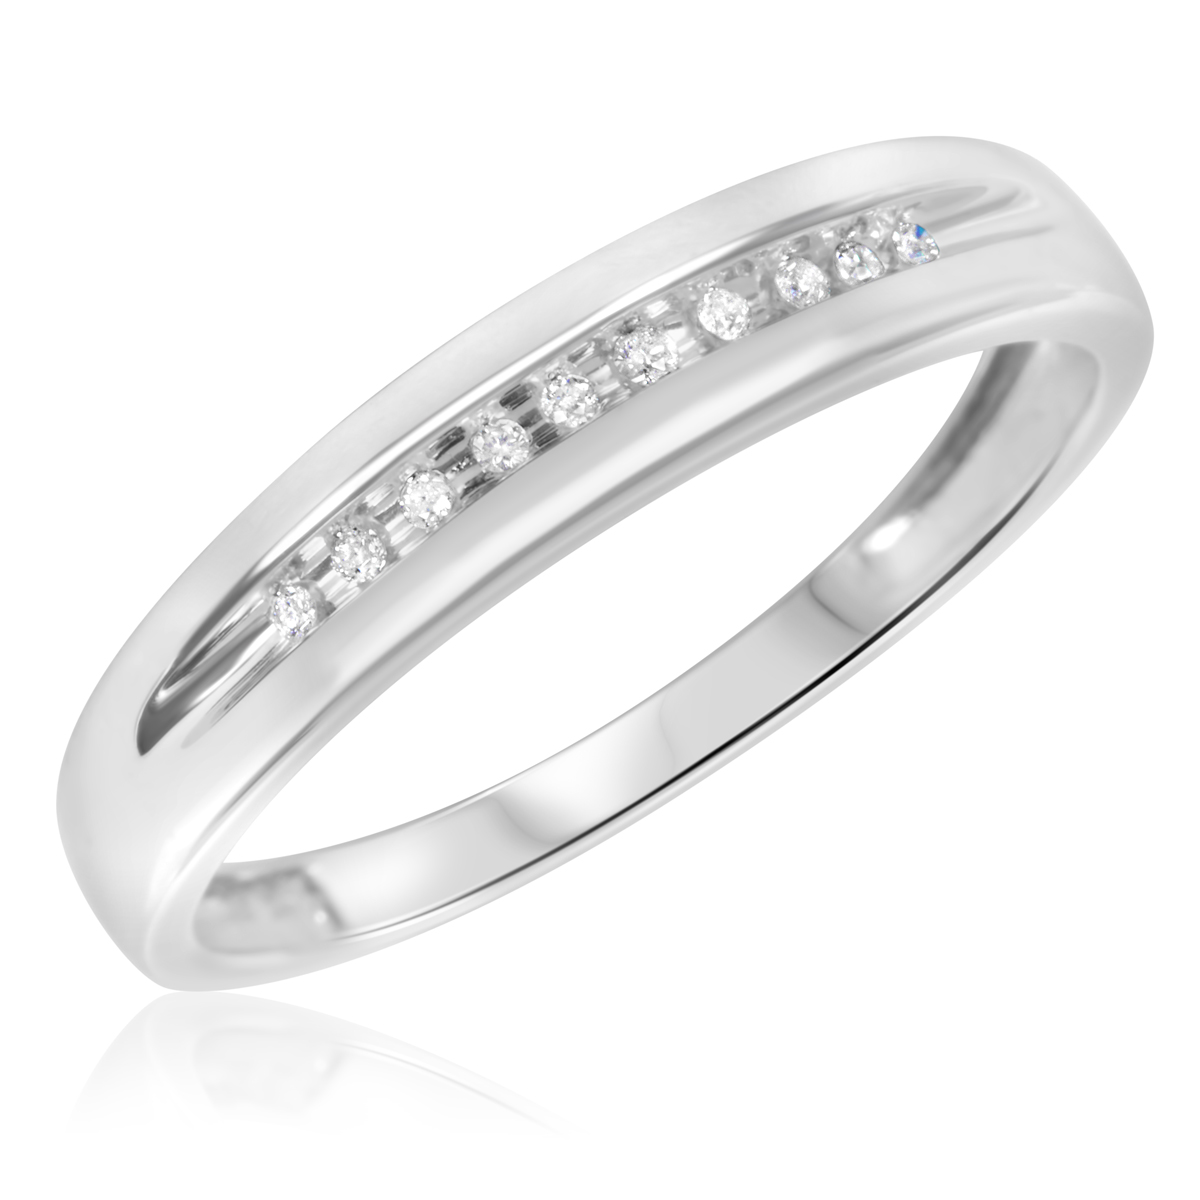 115 CT TW Diamond Mens Wedding Band 10K White Gold My Trio